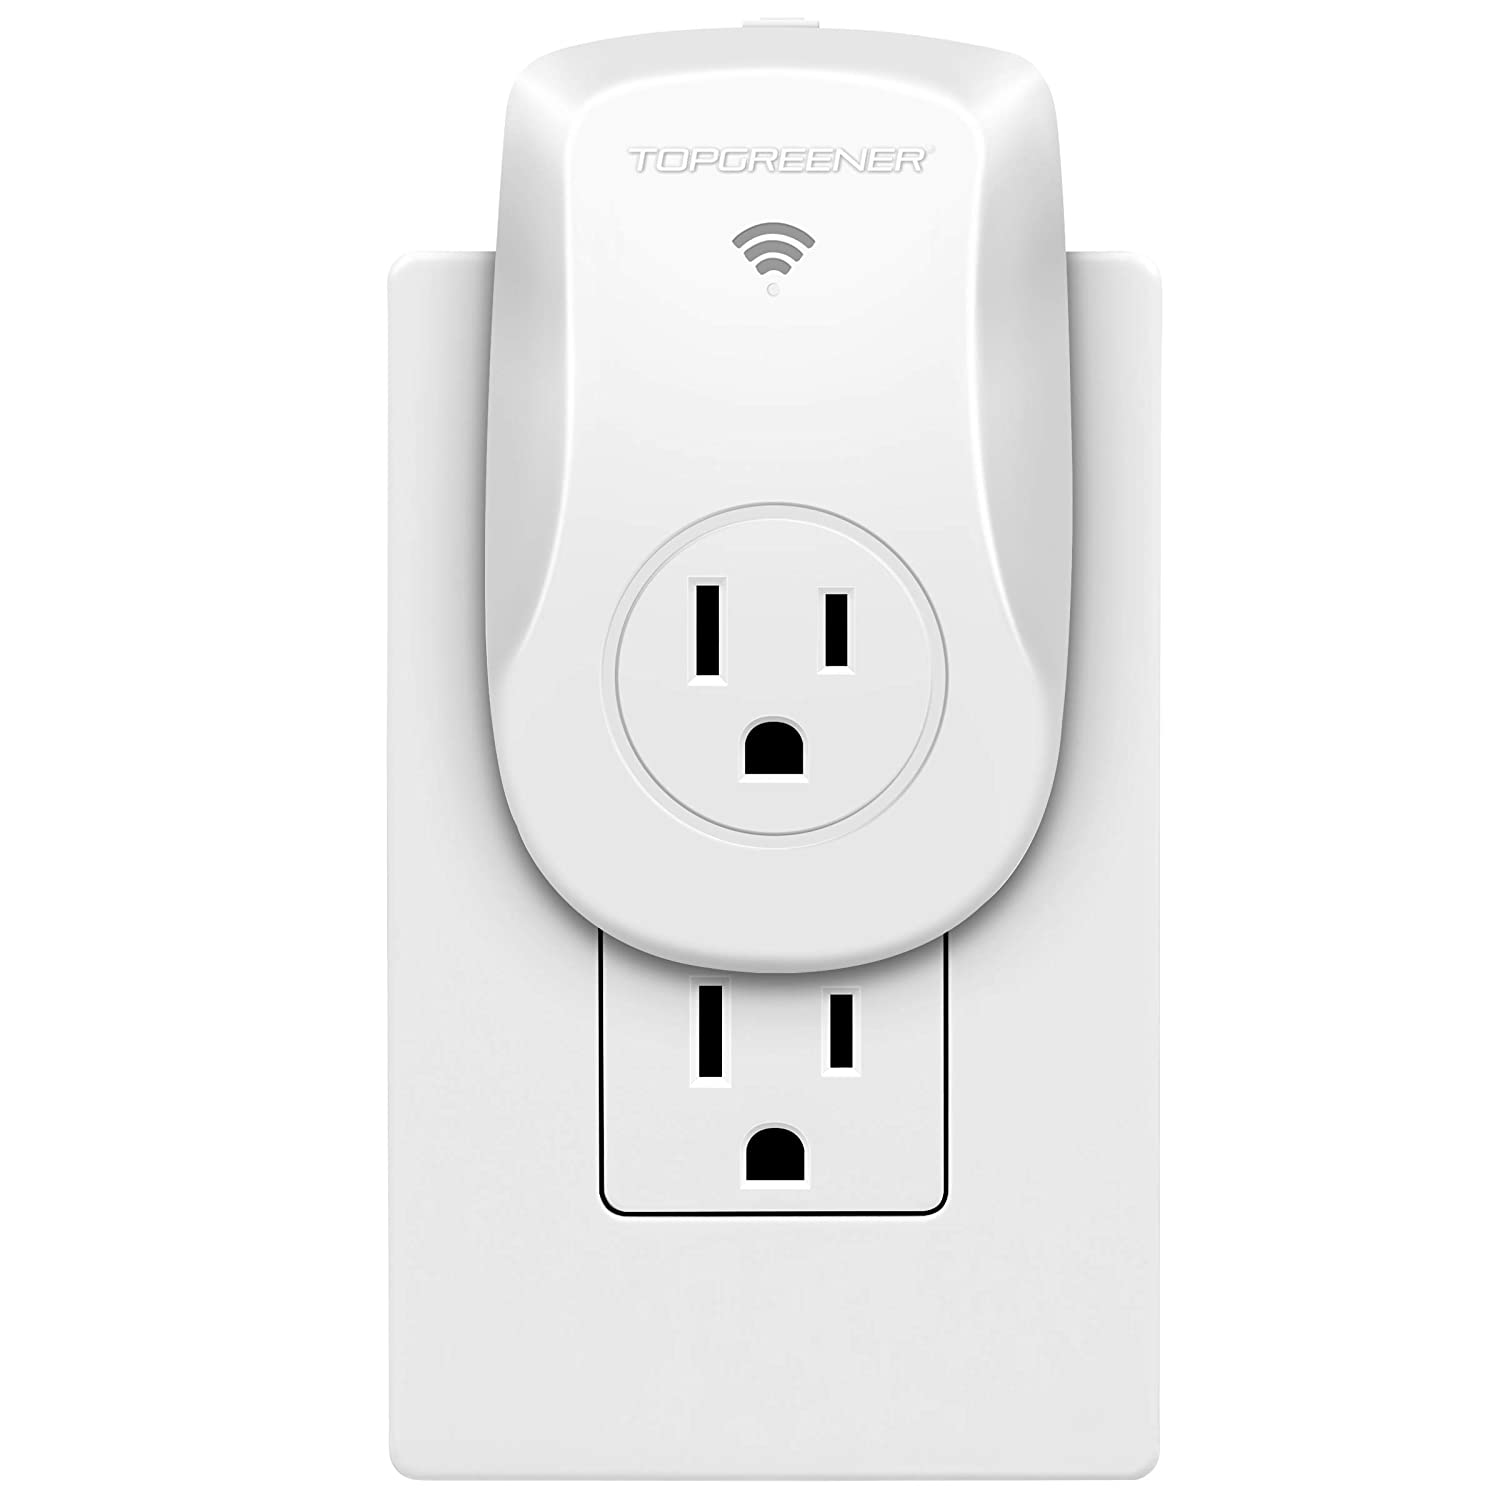 TOPGREENER TGWF115APM Wi-Fi Powerful Plug with Energy Monitoring, Smart Outlet, 15A, Control Lights and Appliances from Anywhere, No Hub Required, White, Works with Amazon Alexa and Google Assistant